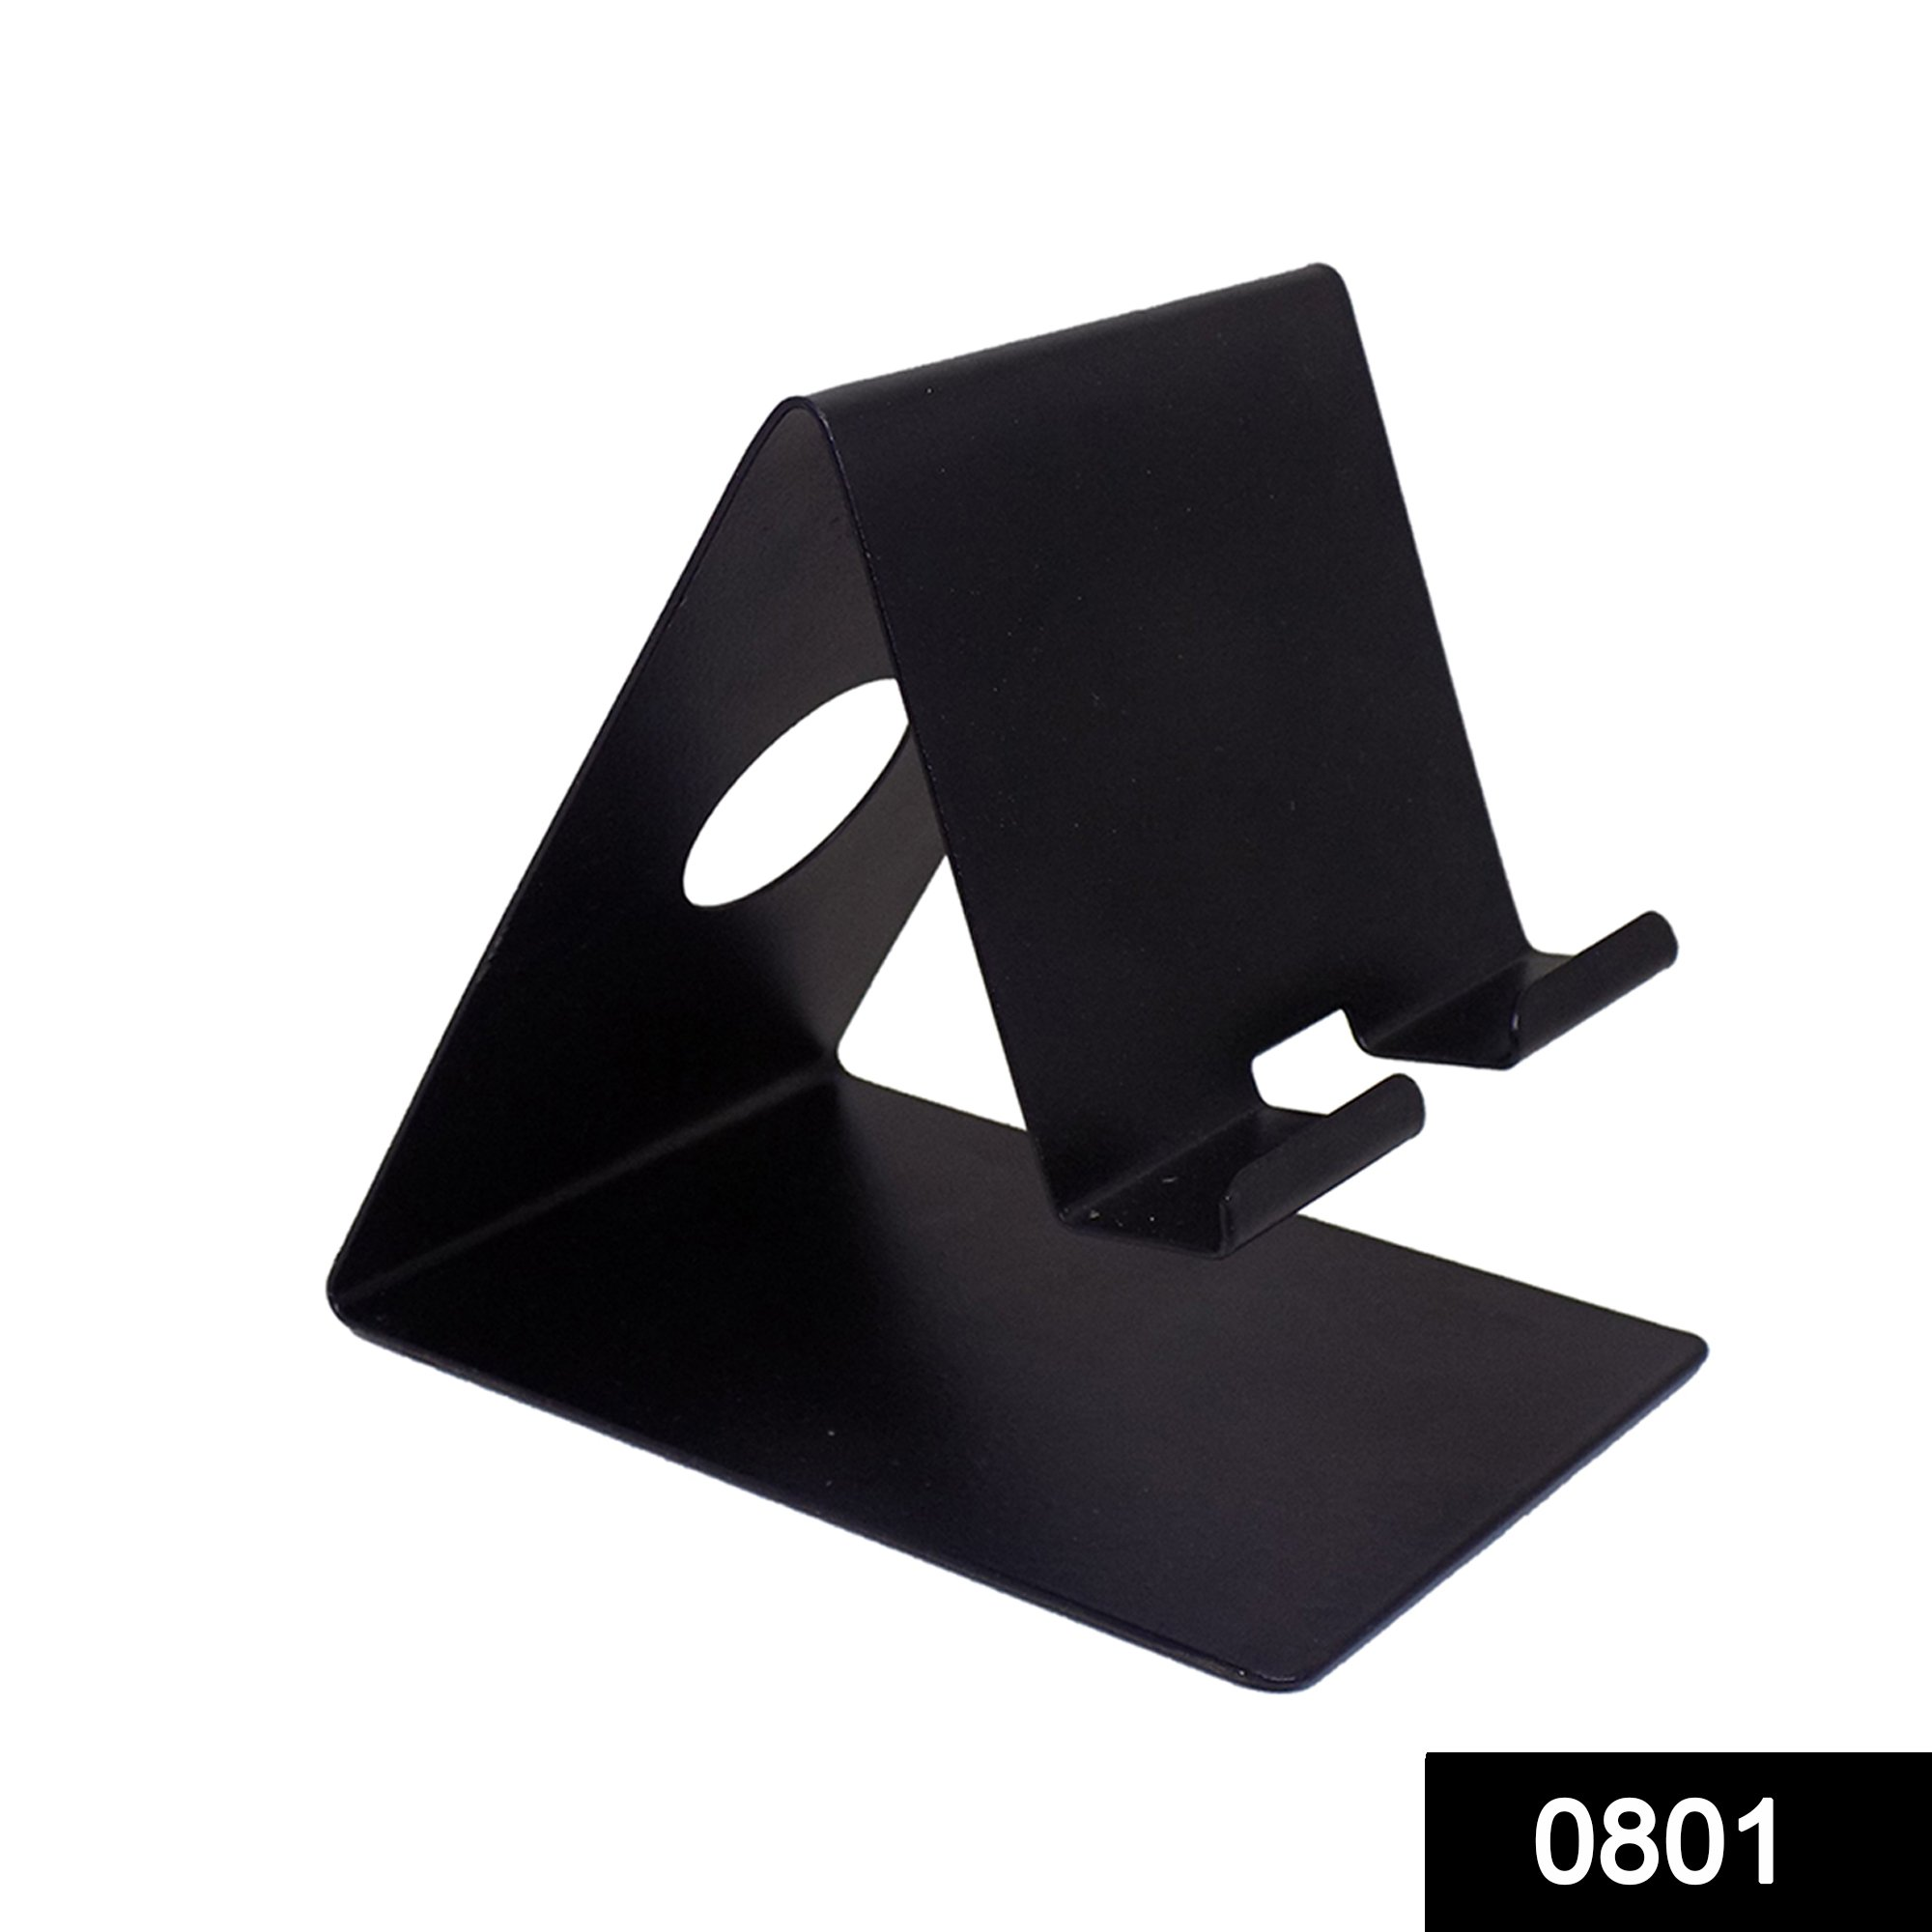 0801 Metal Stand Holder for Mobile Phone and Tablet -